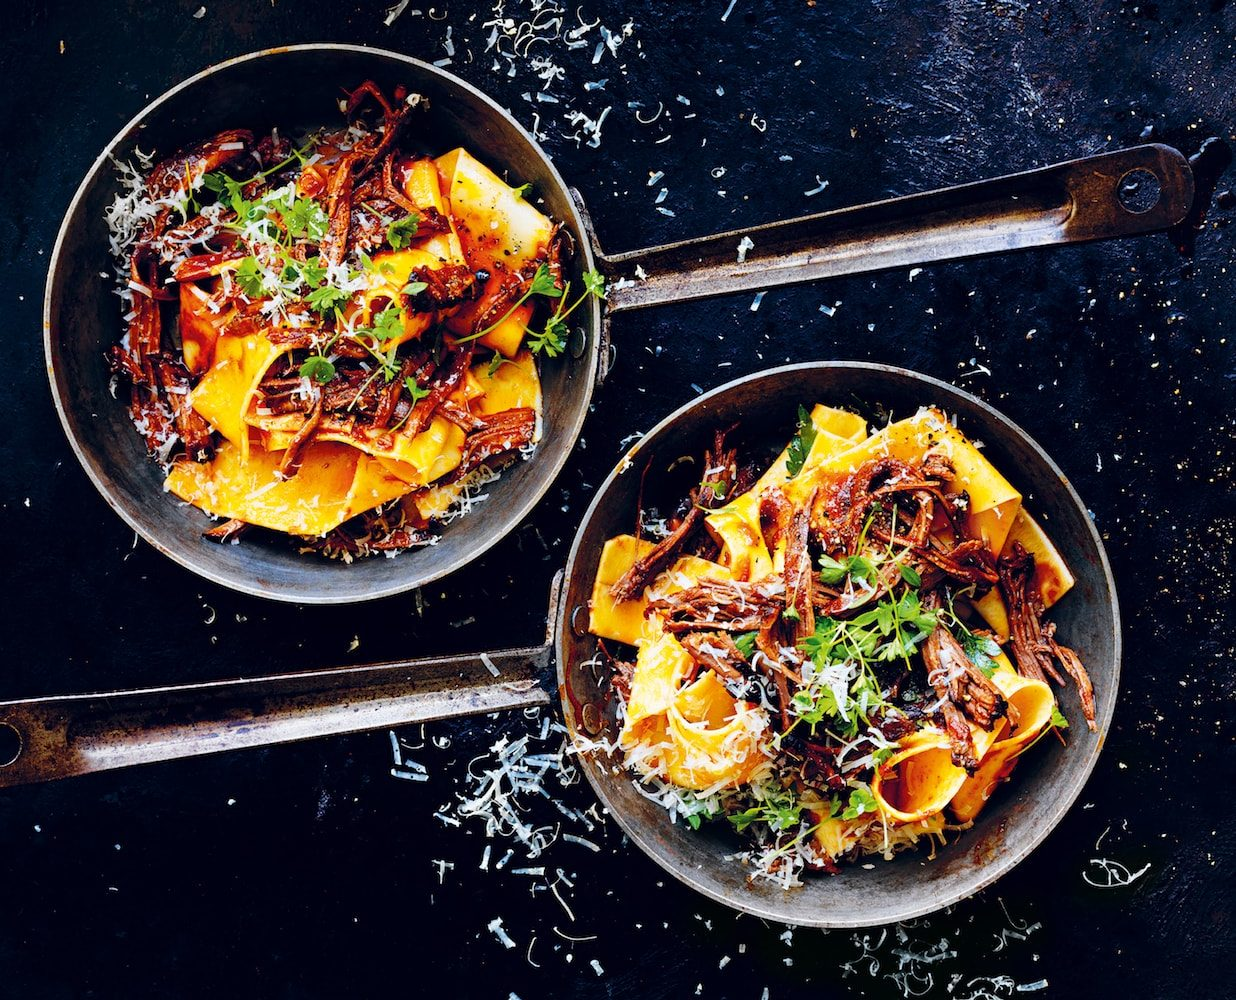 Pappardelle with brisket